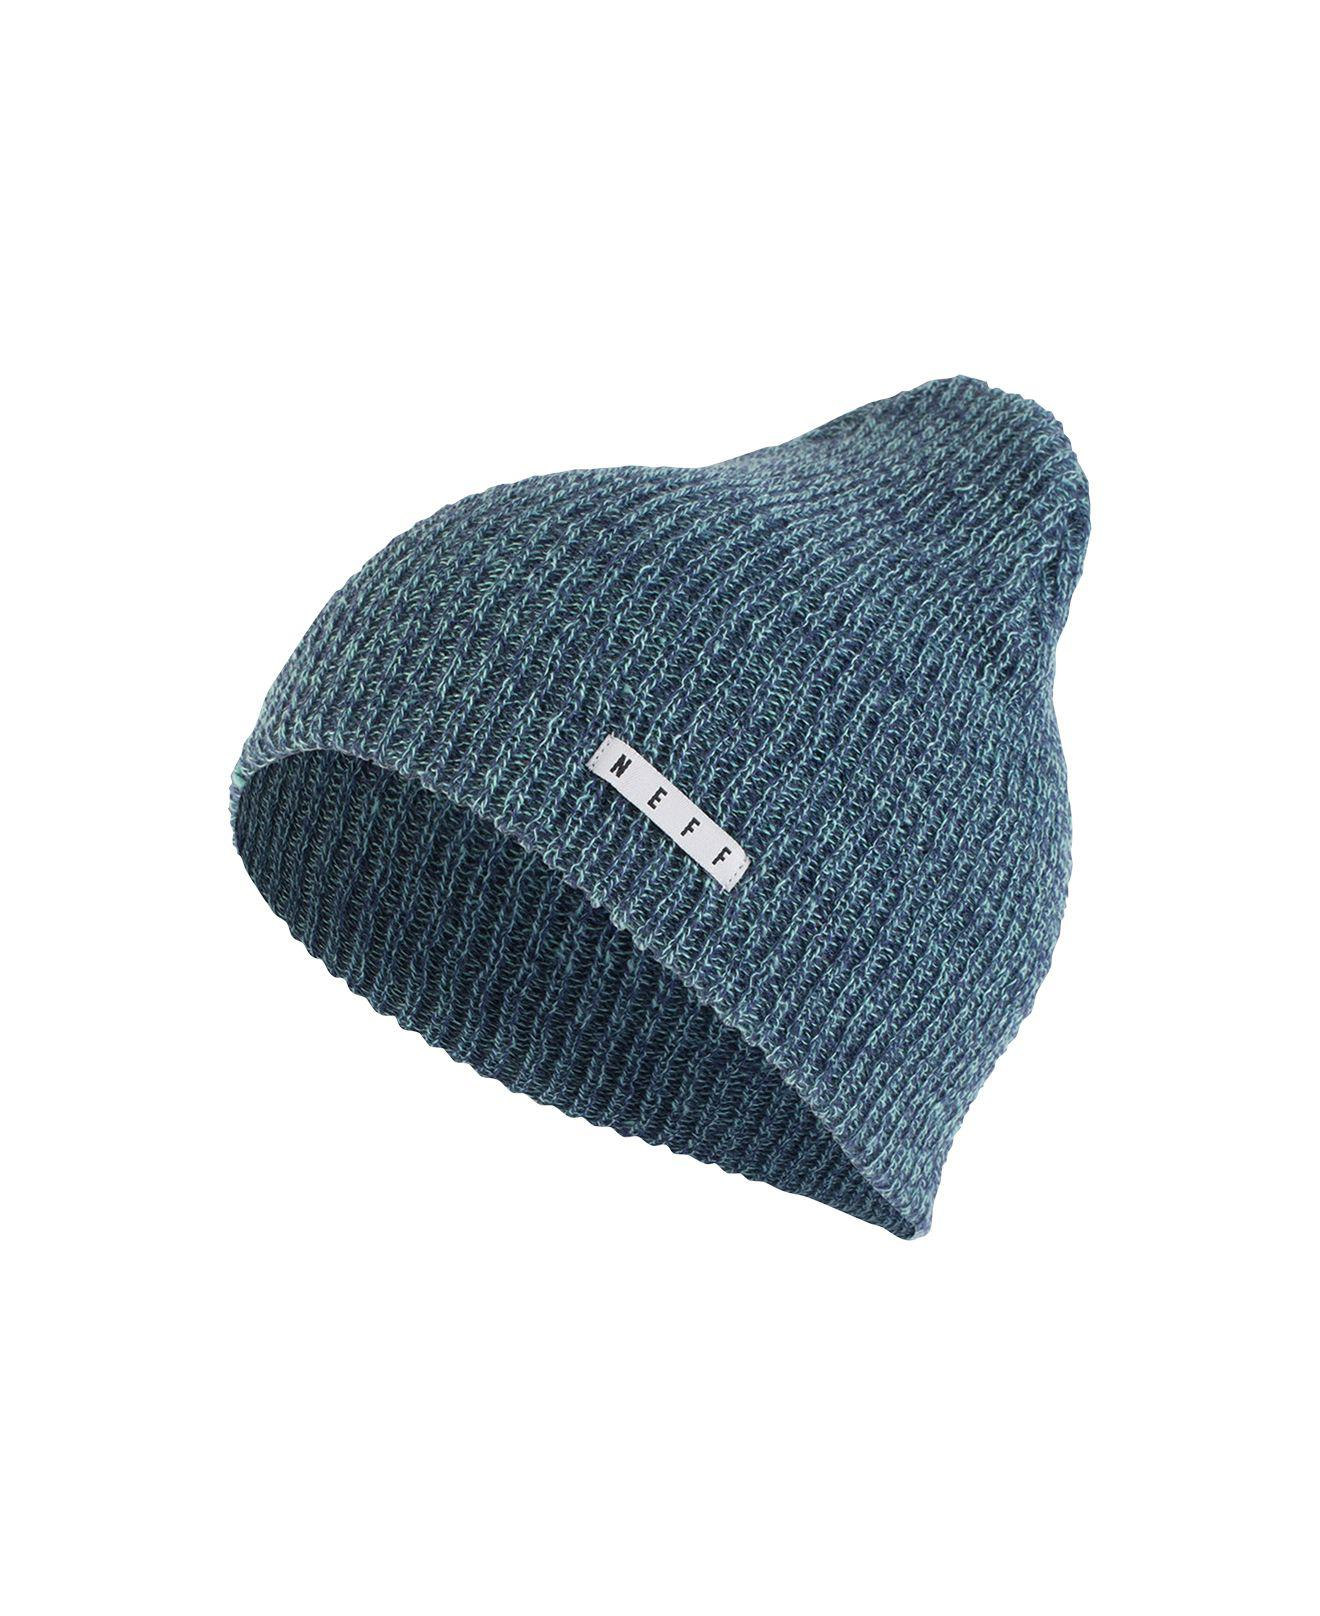 10a4fbc1999 Lyst - Neff Men s Daily Heathered Beanie in Blue for Men